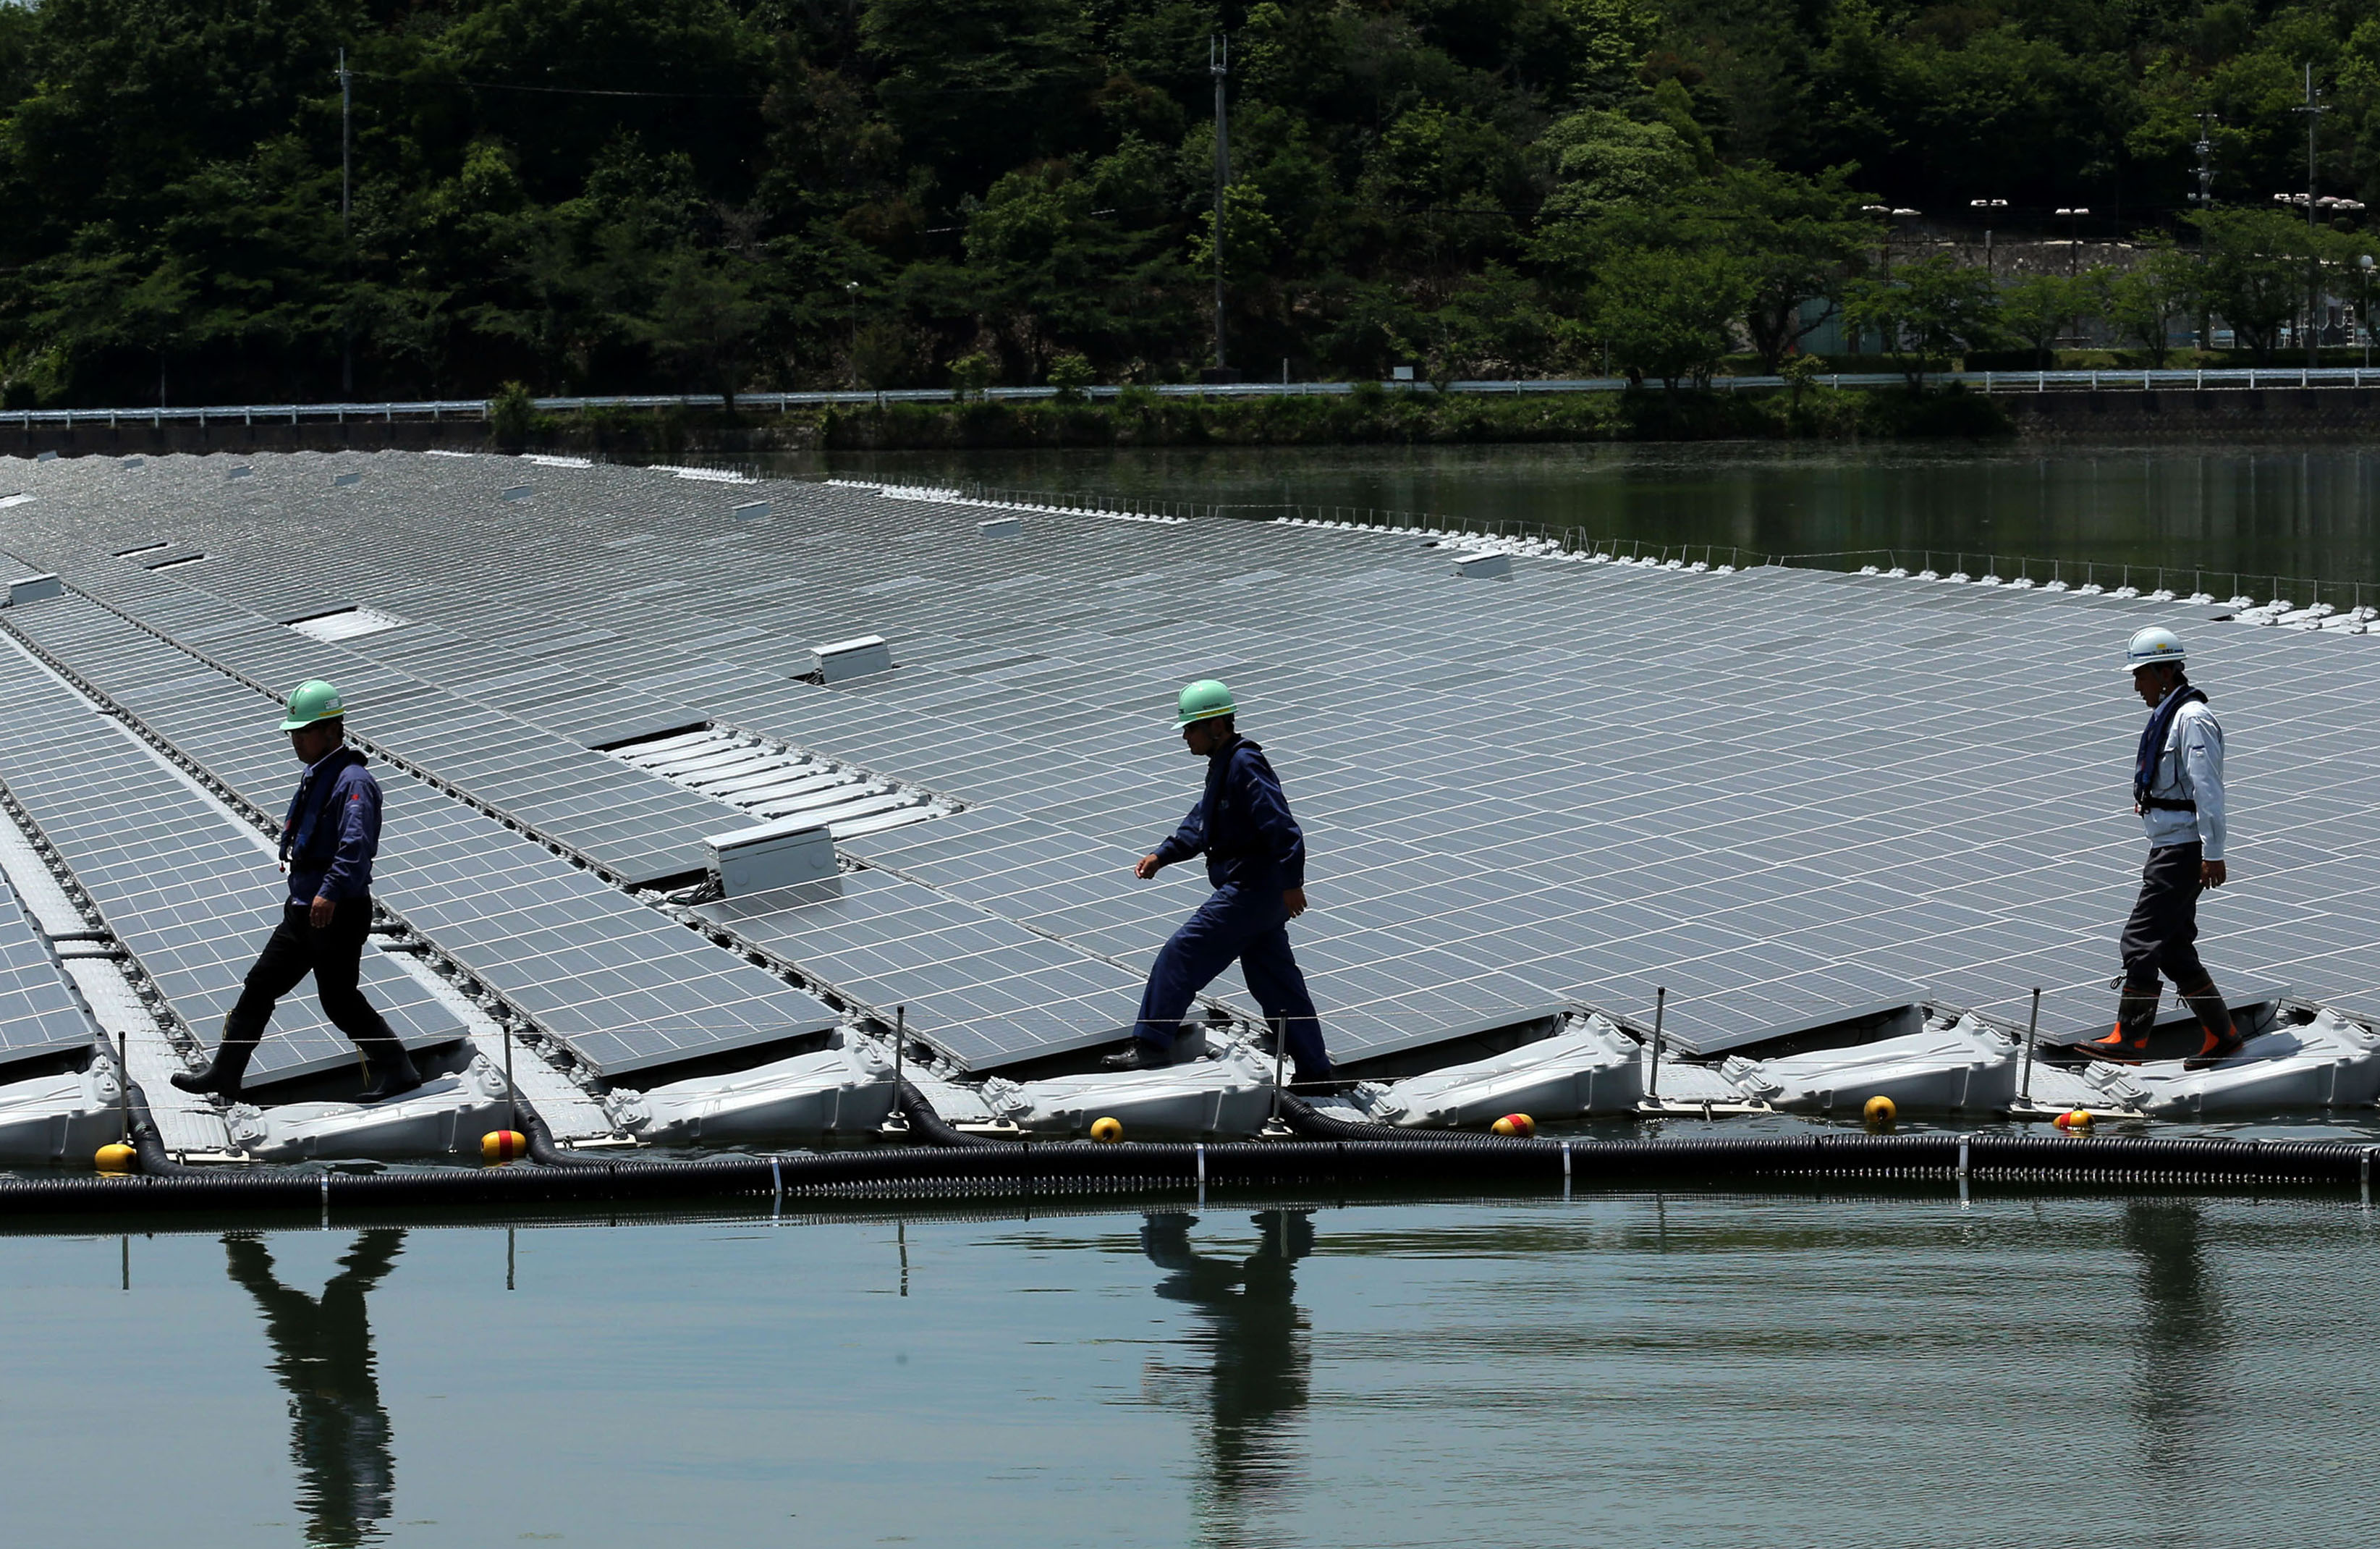 Workers walk among rows of solar panels at Kyocera Corp.'s floating solar power plant at Sakasama Lake in the city of Kasai, Hyogo Prefecture, in May last year.   BLOOMBERG